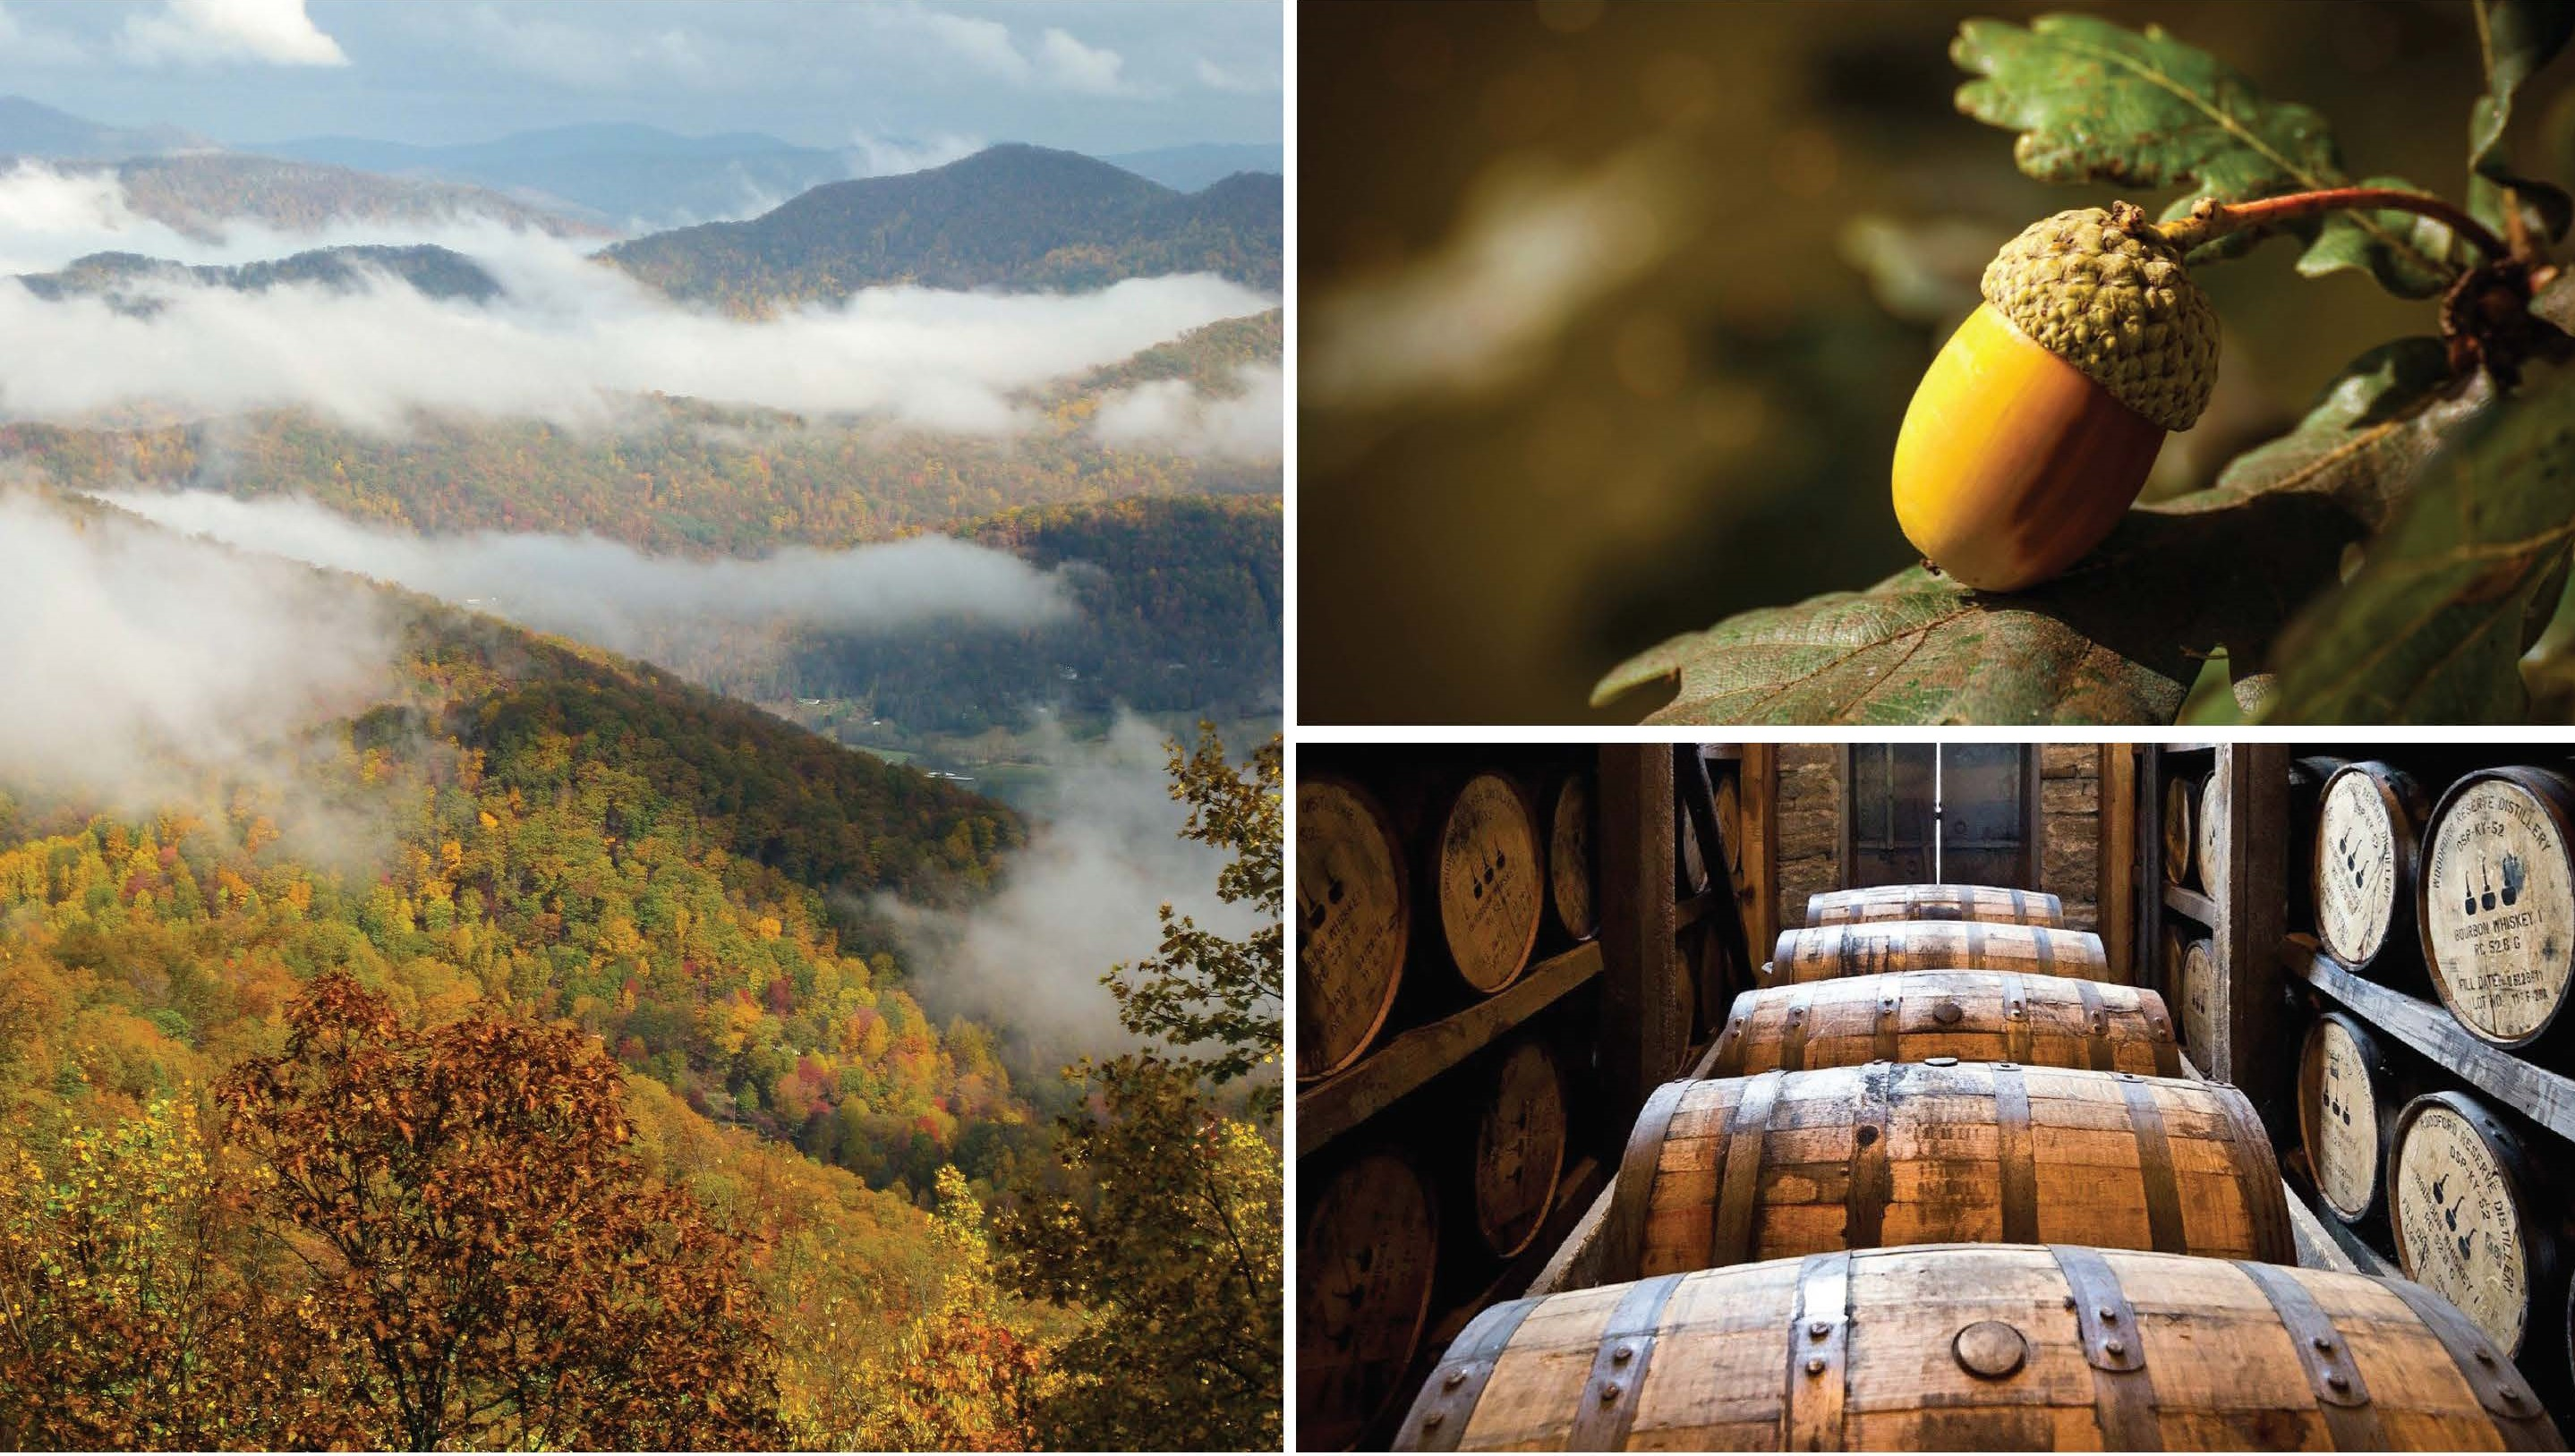 EPN Breakfast- January 14, 2020 The Bourbon Barrel Connection: Revitalizing Appalachian Ohio economies and oak-dominated forests